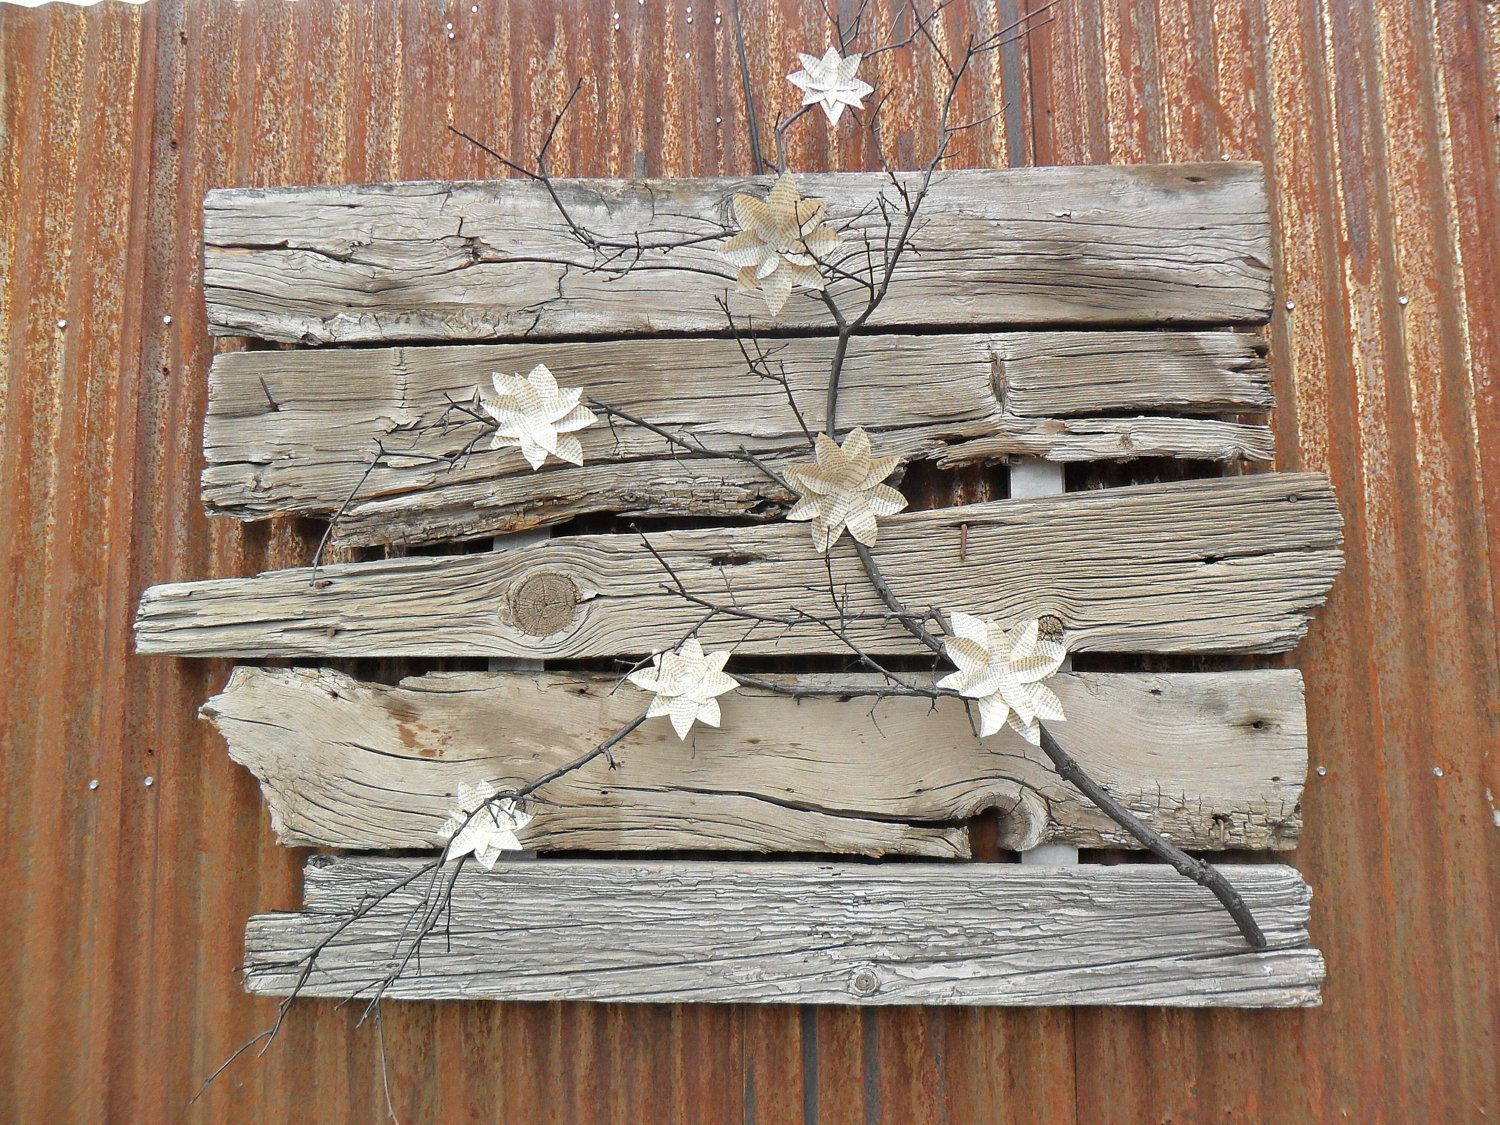 Distressed Rustic Local Barnwood Wall Hanging Inspiration Lovely In A Rustic Style Room Consider Outdoors As Wel Barn Wood Decor Barn Wood Barn Wood Crafts